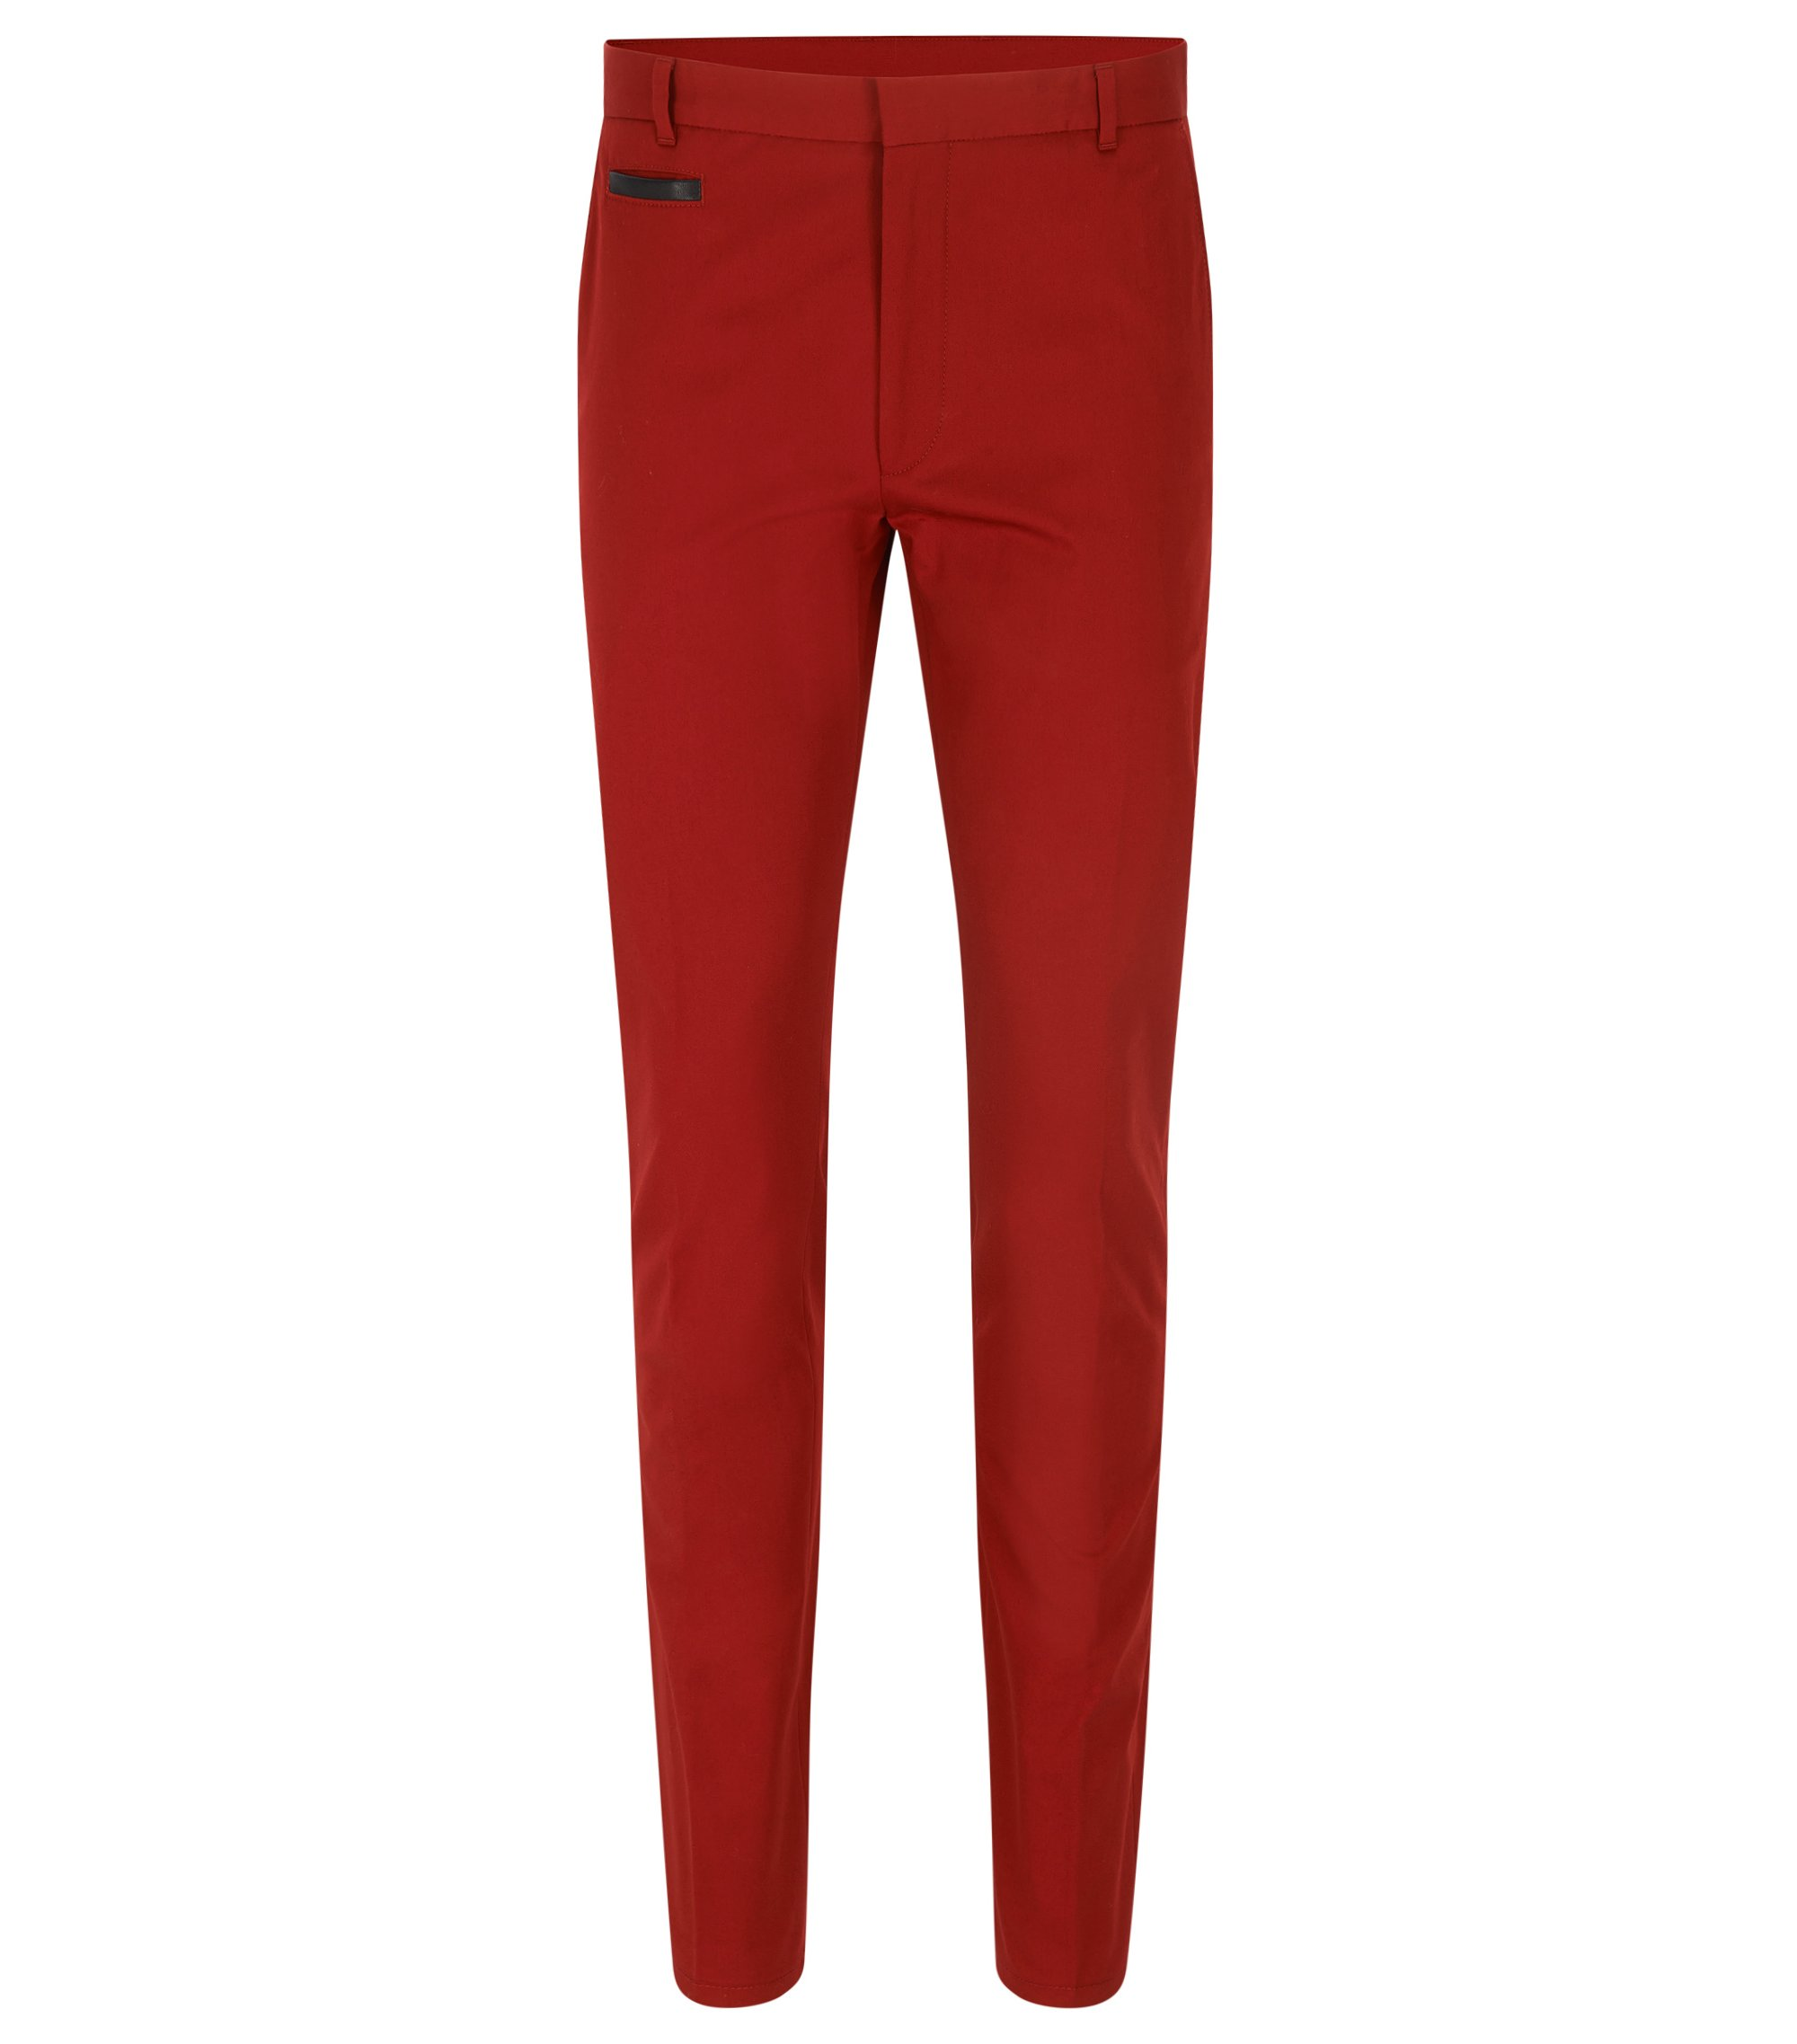 Stretch Cotton Pant, Extra Slim Fit | Harlyn, Dark Red